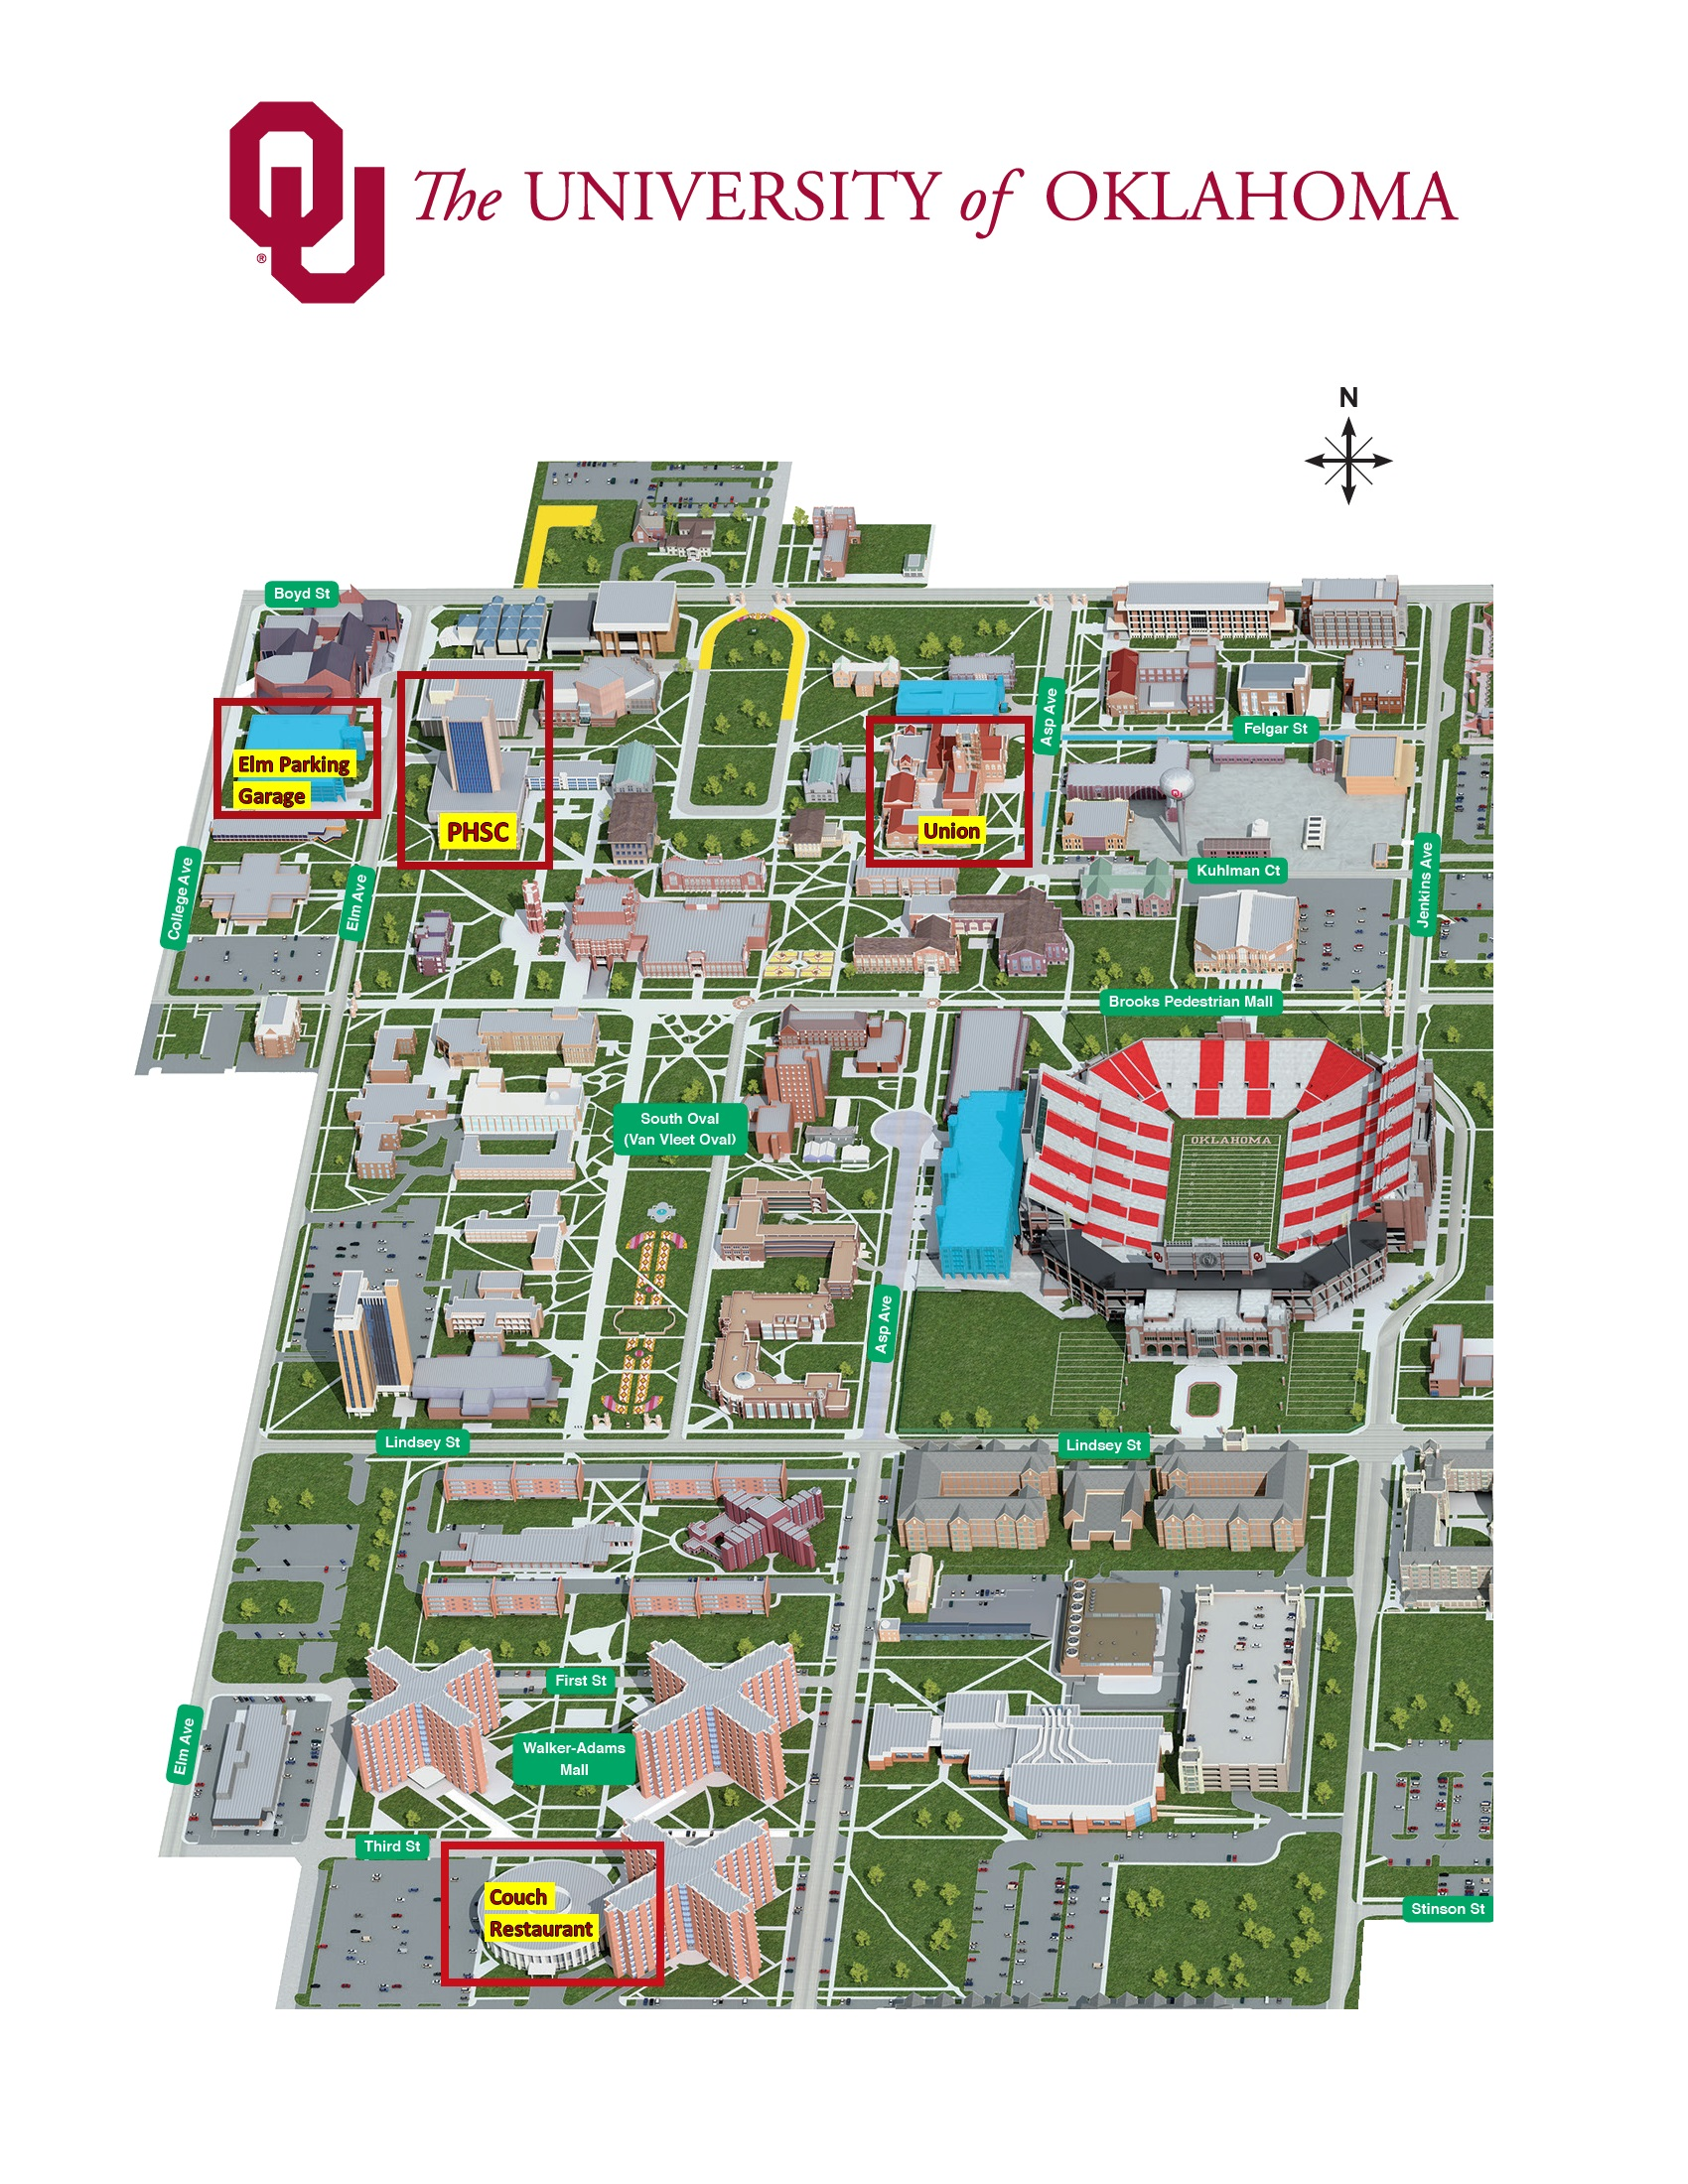 SIAM Central States Section   University of Oklahoma